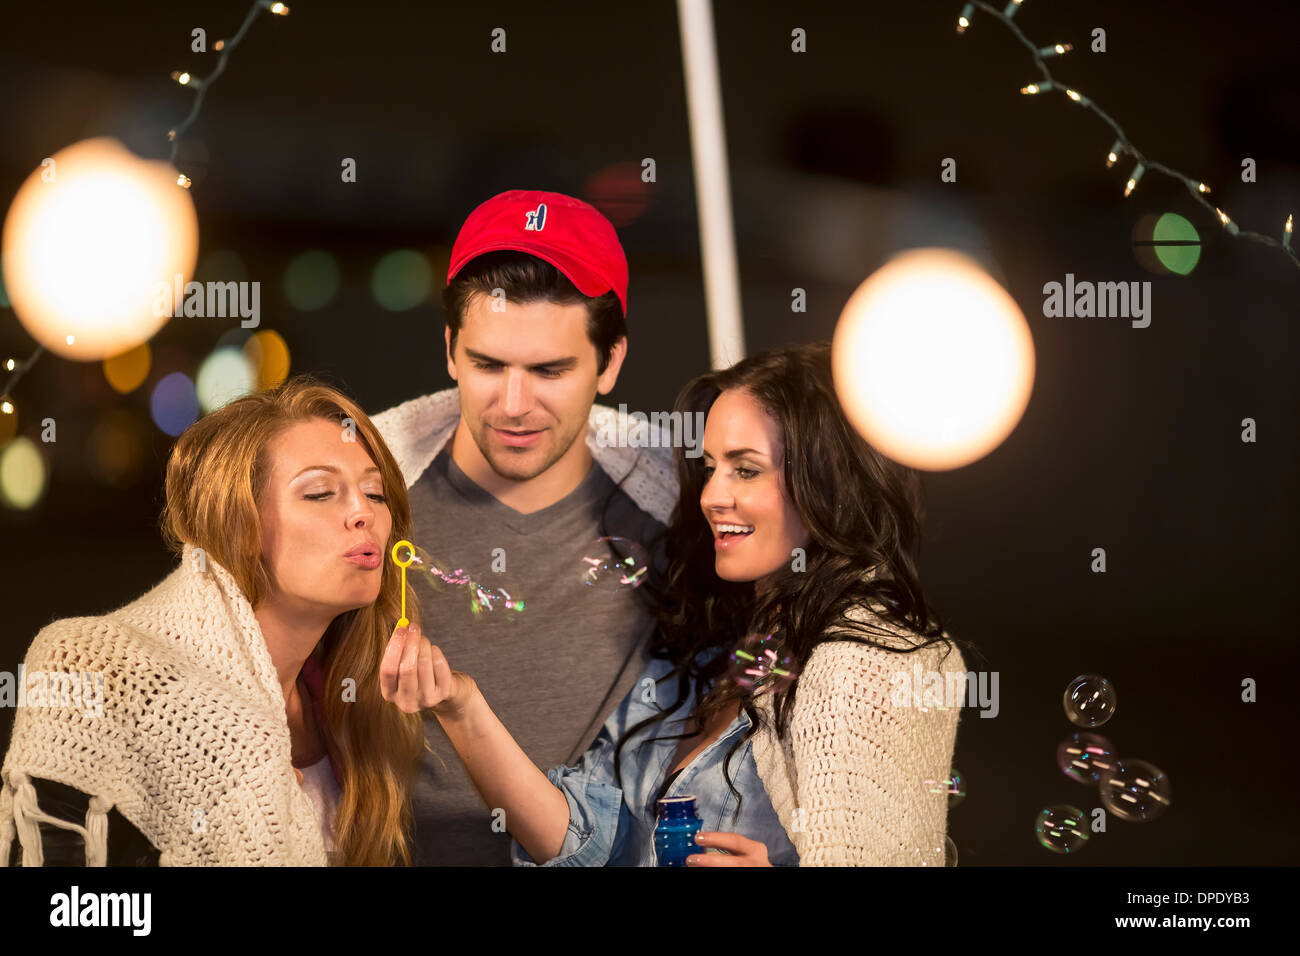 Young adult friends fooling around blowing bubbles at rooftop party - Stock Image